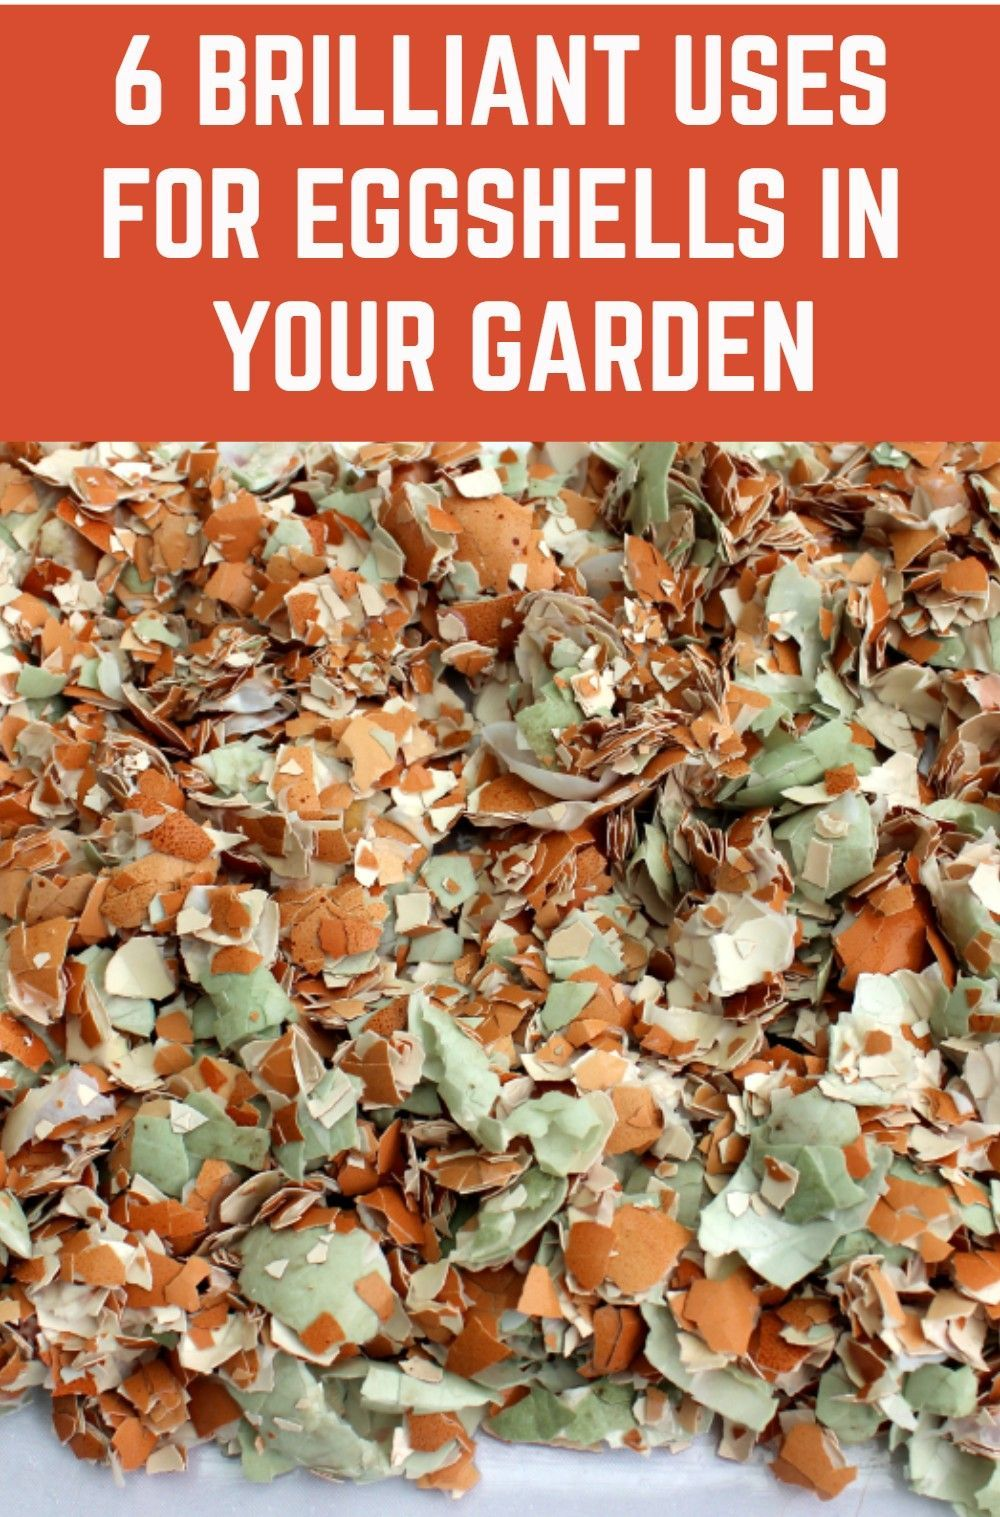 6 Brilliant Uses For Eggshells In Your Garden